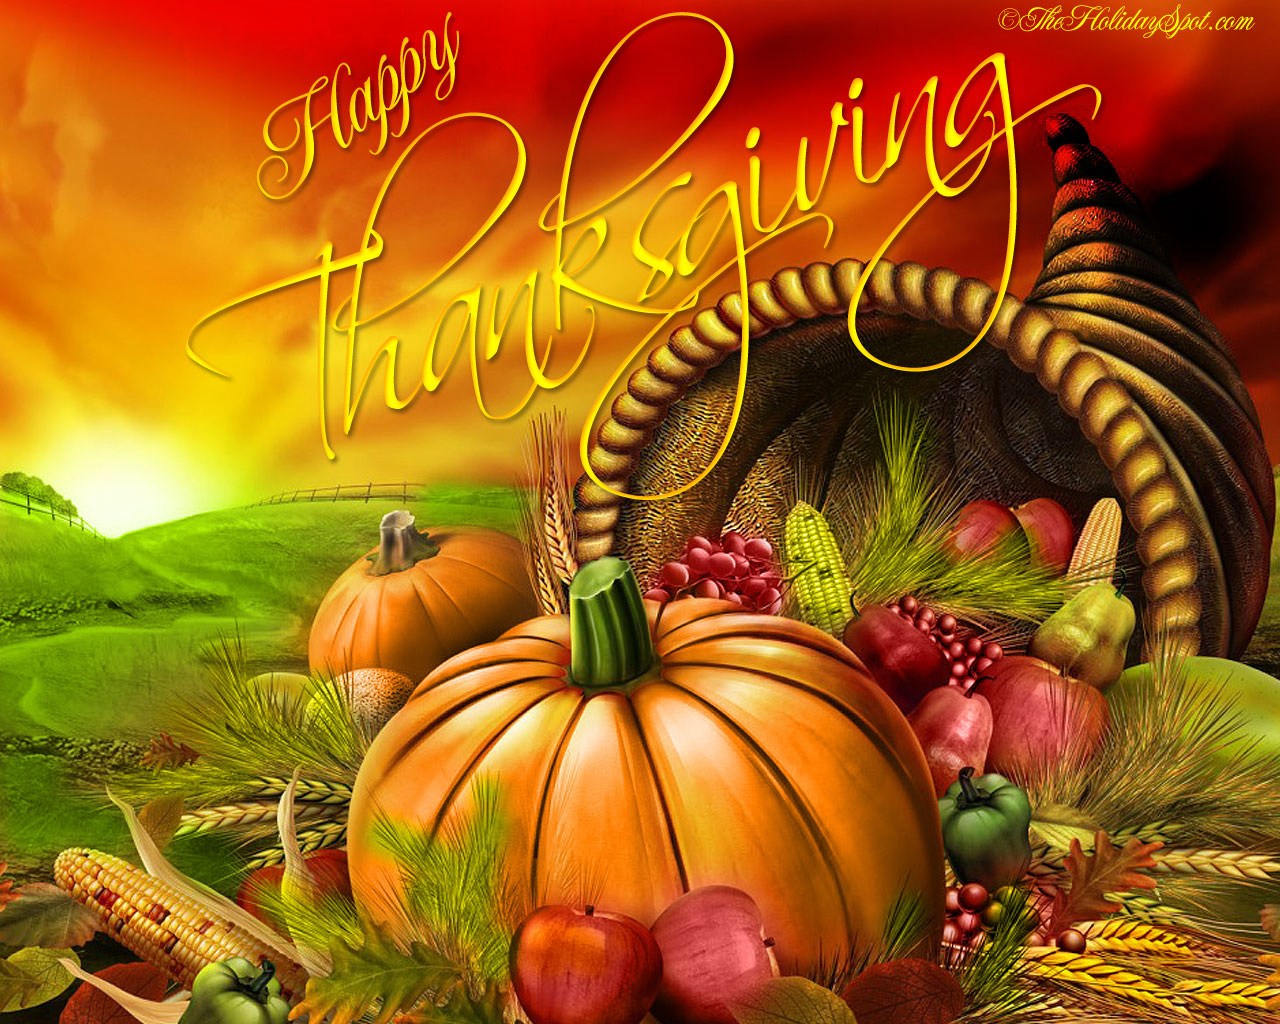 Wallpapers on Thanksgiving 1280x1024